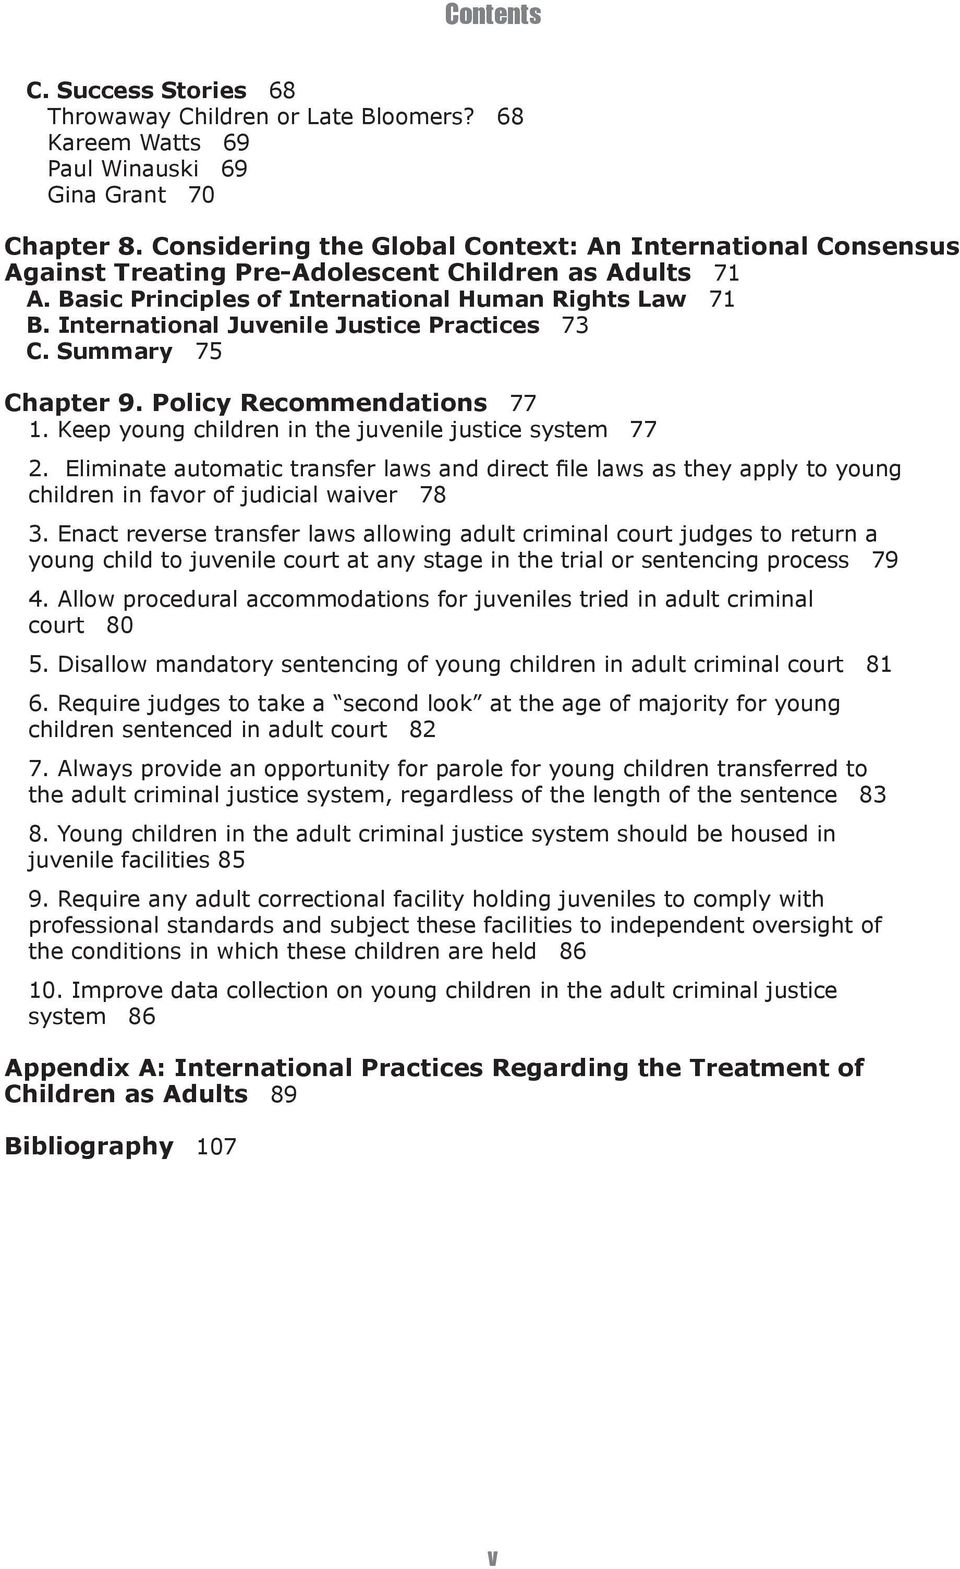 International Juvenile Justice Practices 73 C. Summary 75 Chapter 9. Policy Recommendations 77 1. Keep young children in the juvenile justice system 77 2.